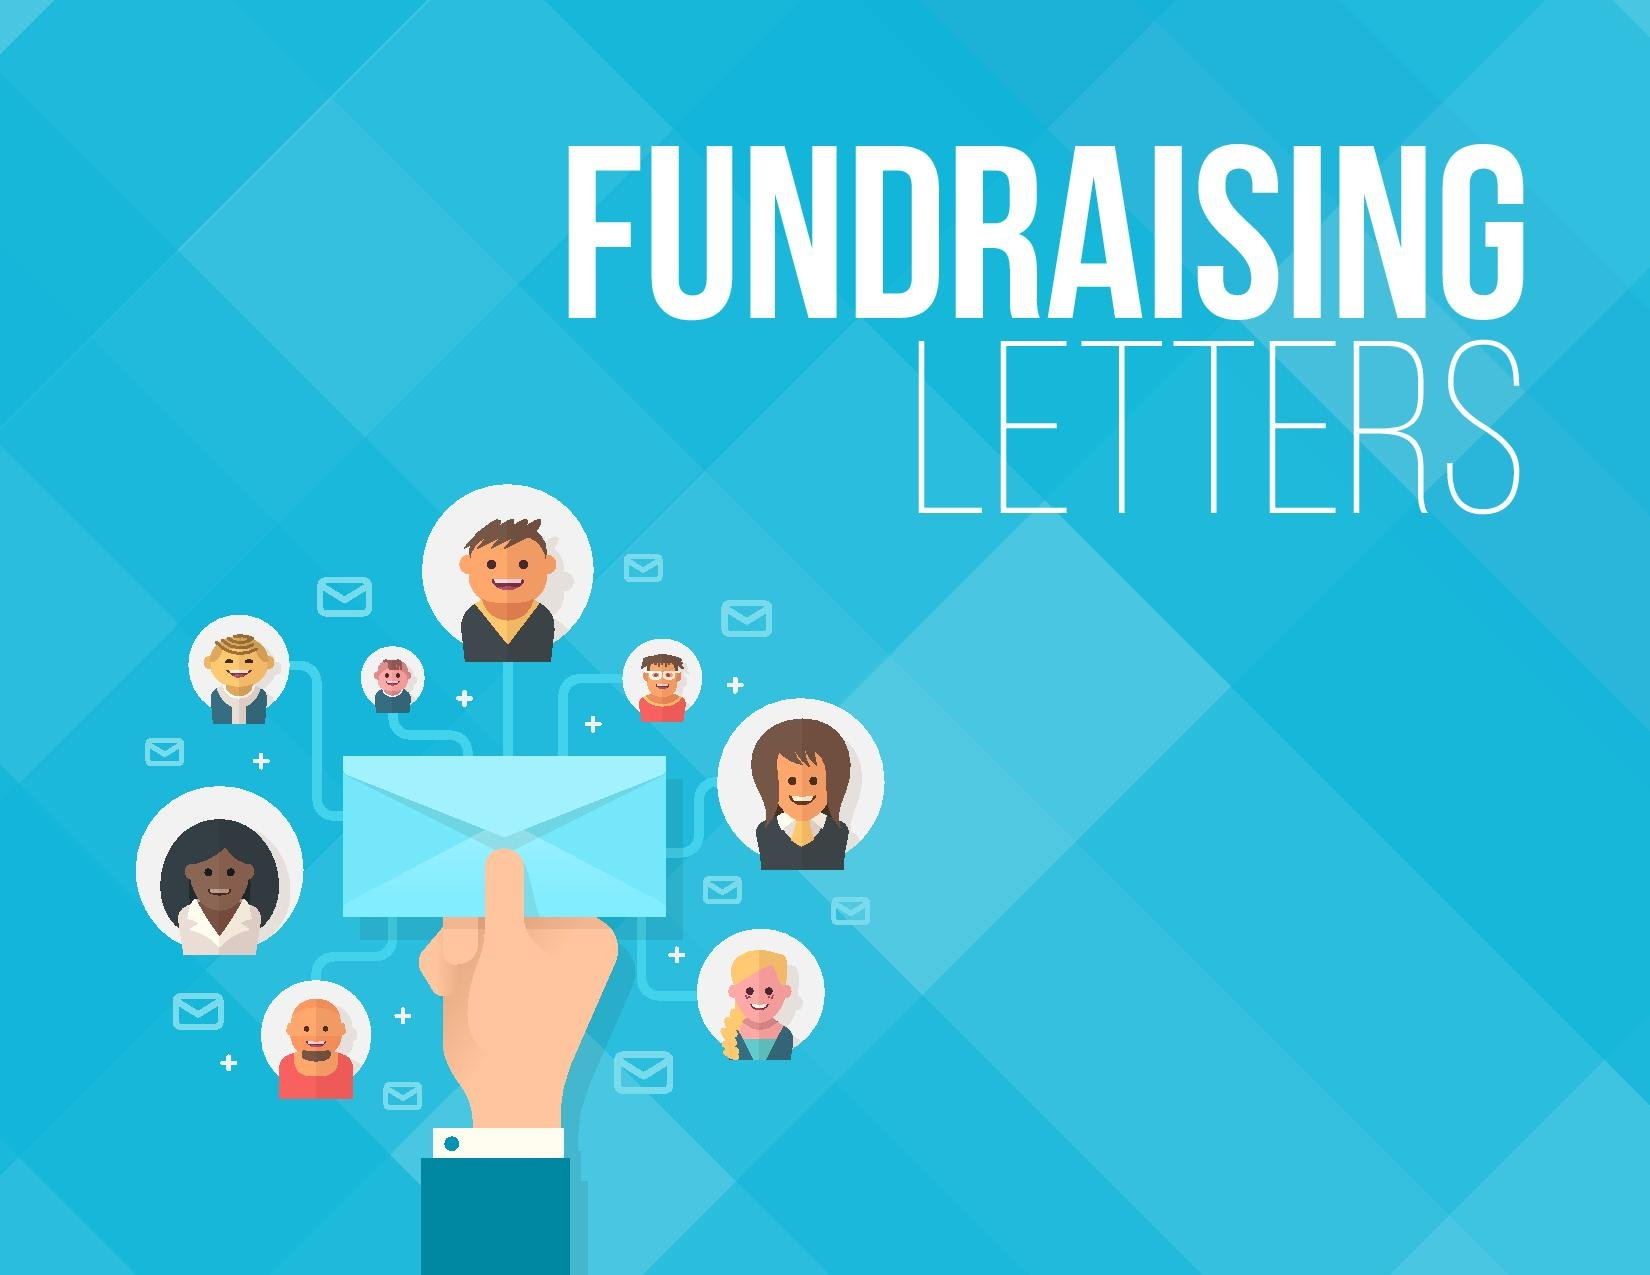 Request For Donation Letter Template Free from a.opmnstr.com